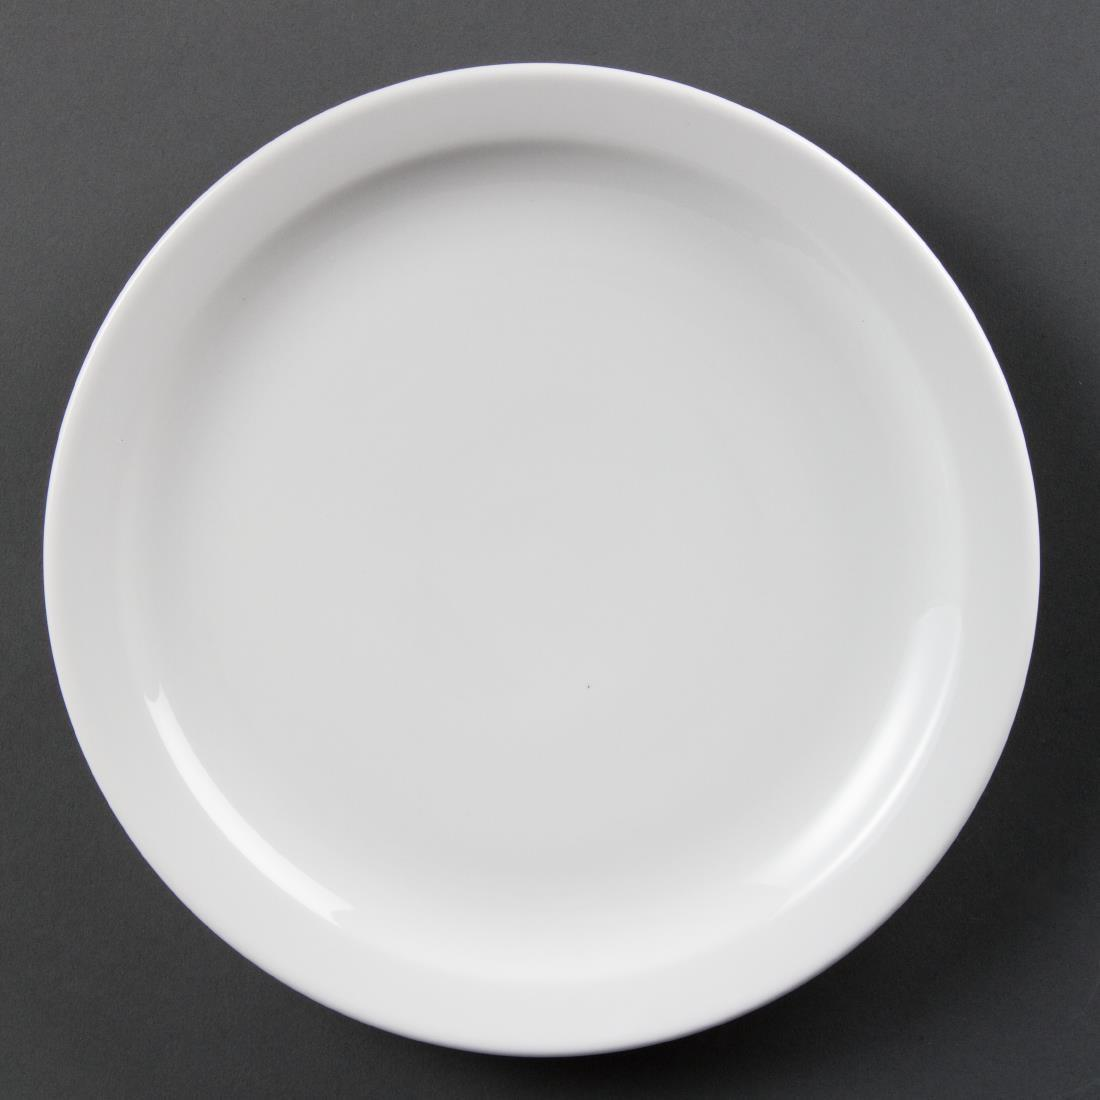 Olympia Whiteware Narrow Rimmed Plates 250mm